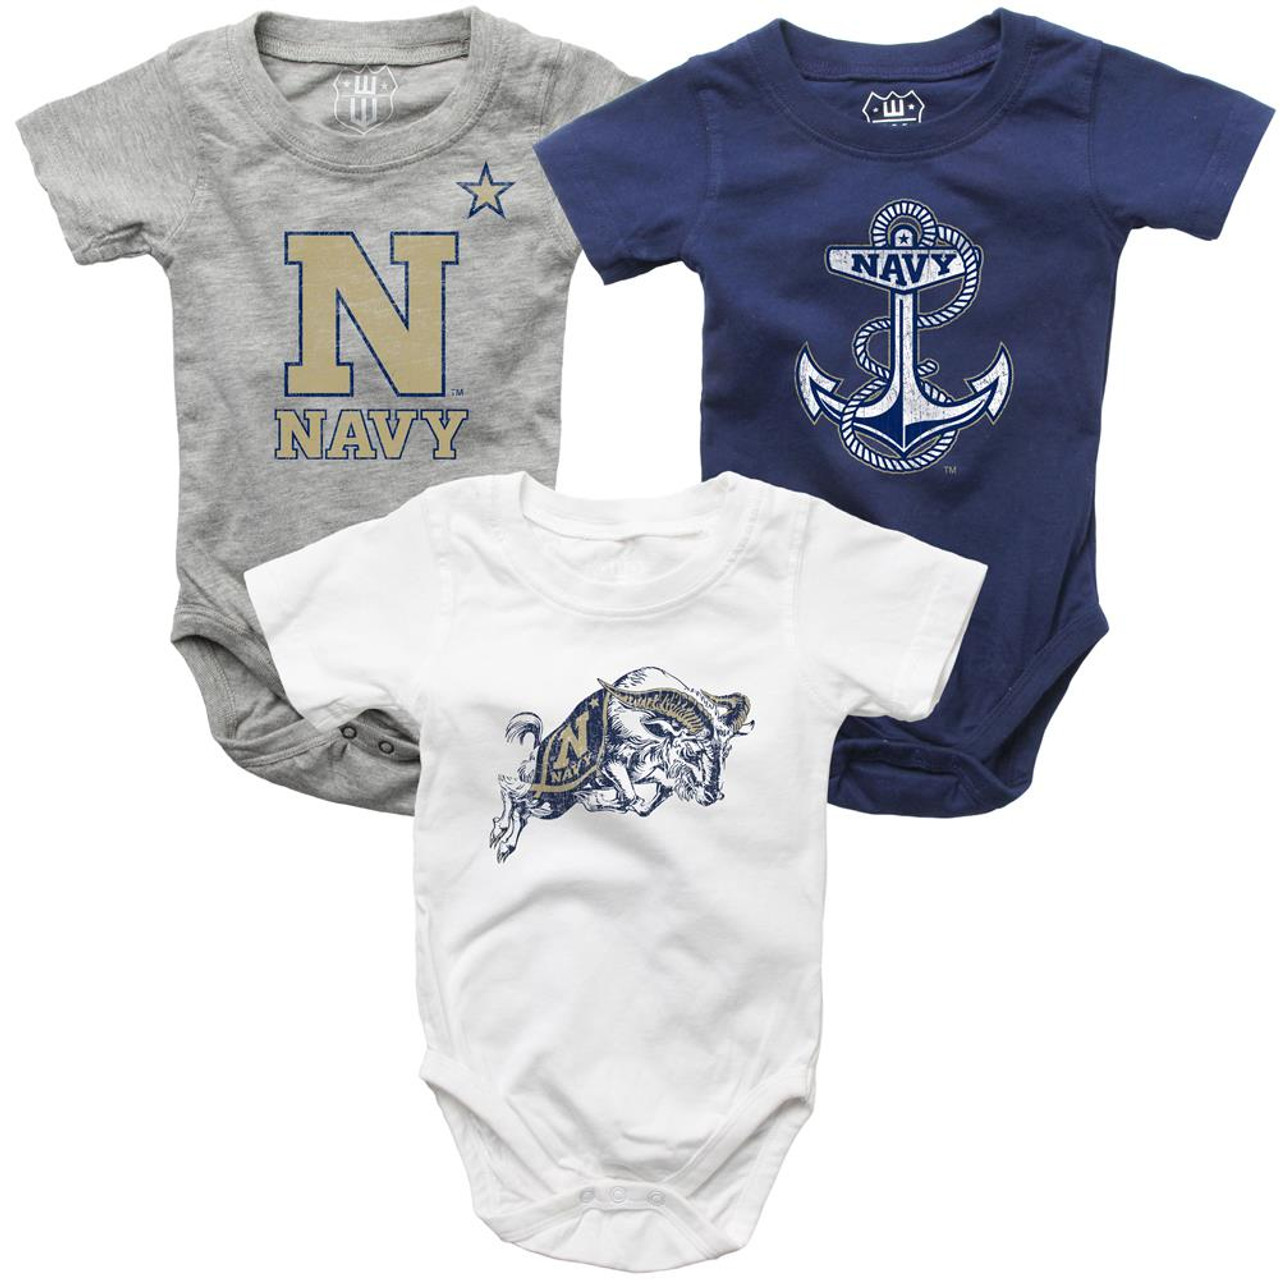 Infant Naval Academy Navy Bodysuits 3 Pack Organic Cotton Set